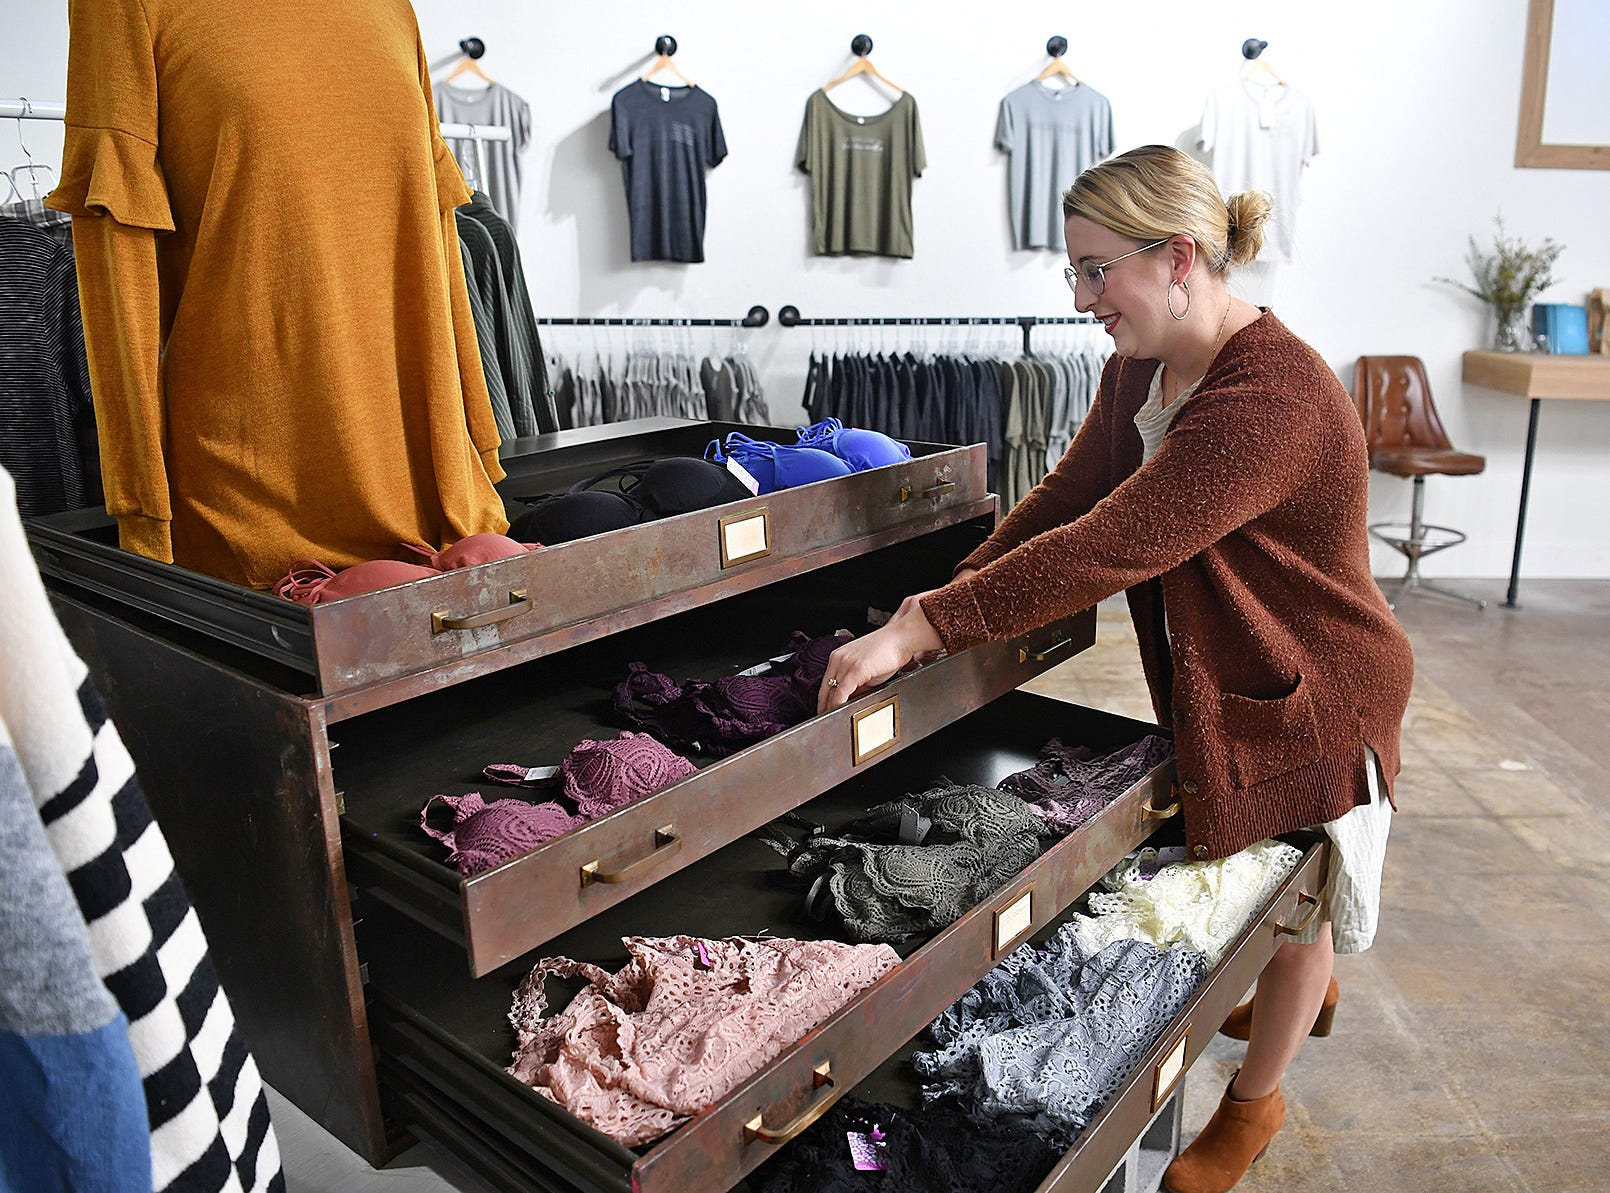 Holly Levell, a creative director at Ruth & Esthers, sets up a display in the apparrel area of the store that opened in August.